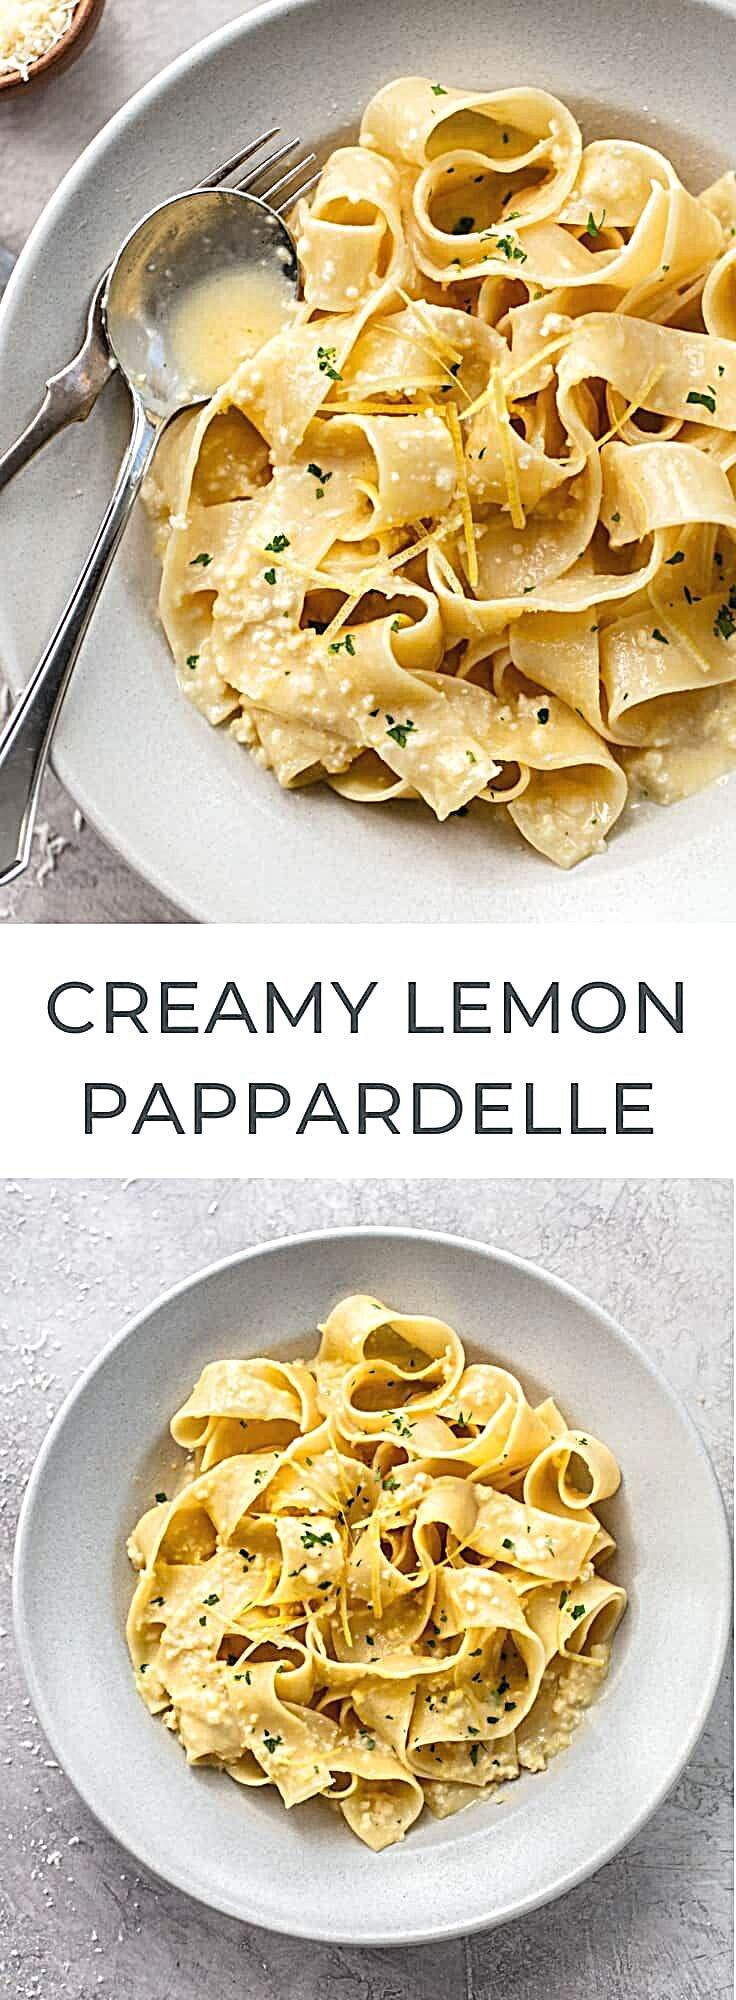 Pappardelle al Limone is an easy and QUICK creamy lemon pasta recipe you'll make again and again: Wi...